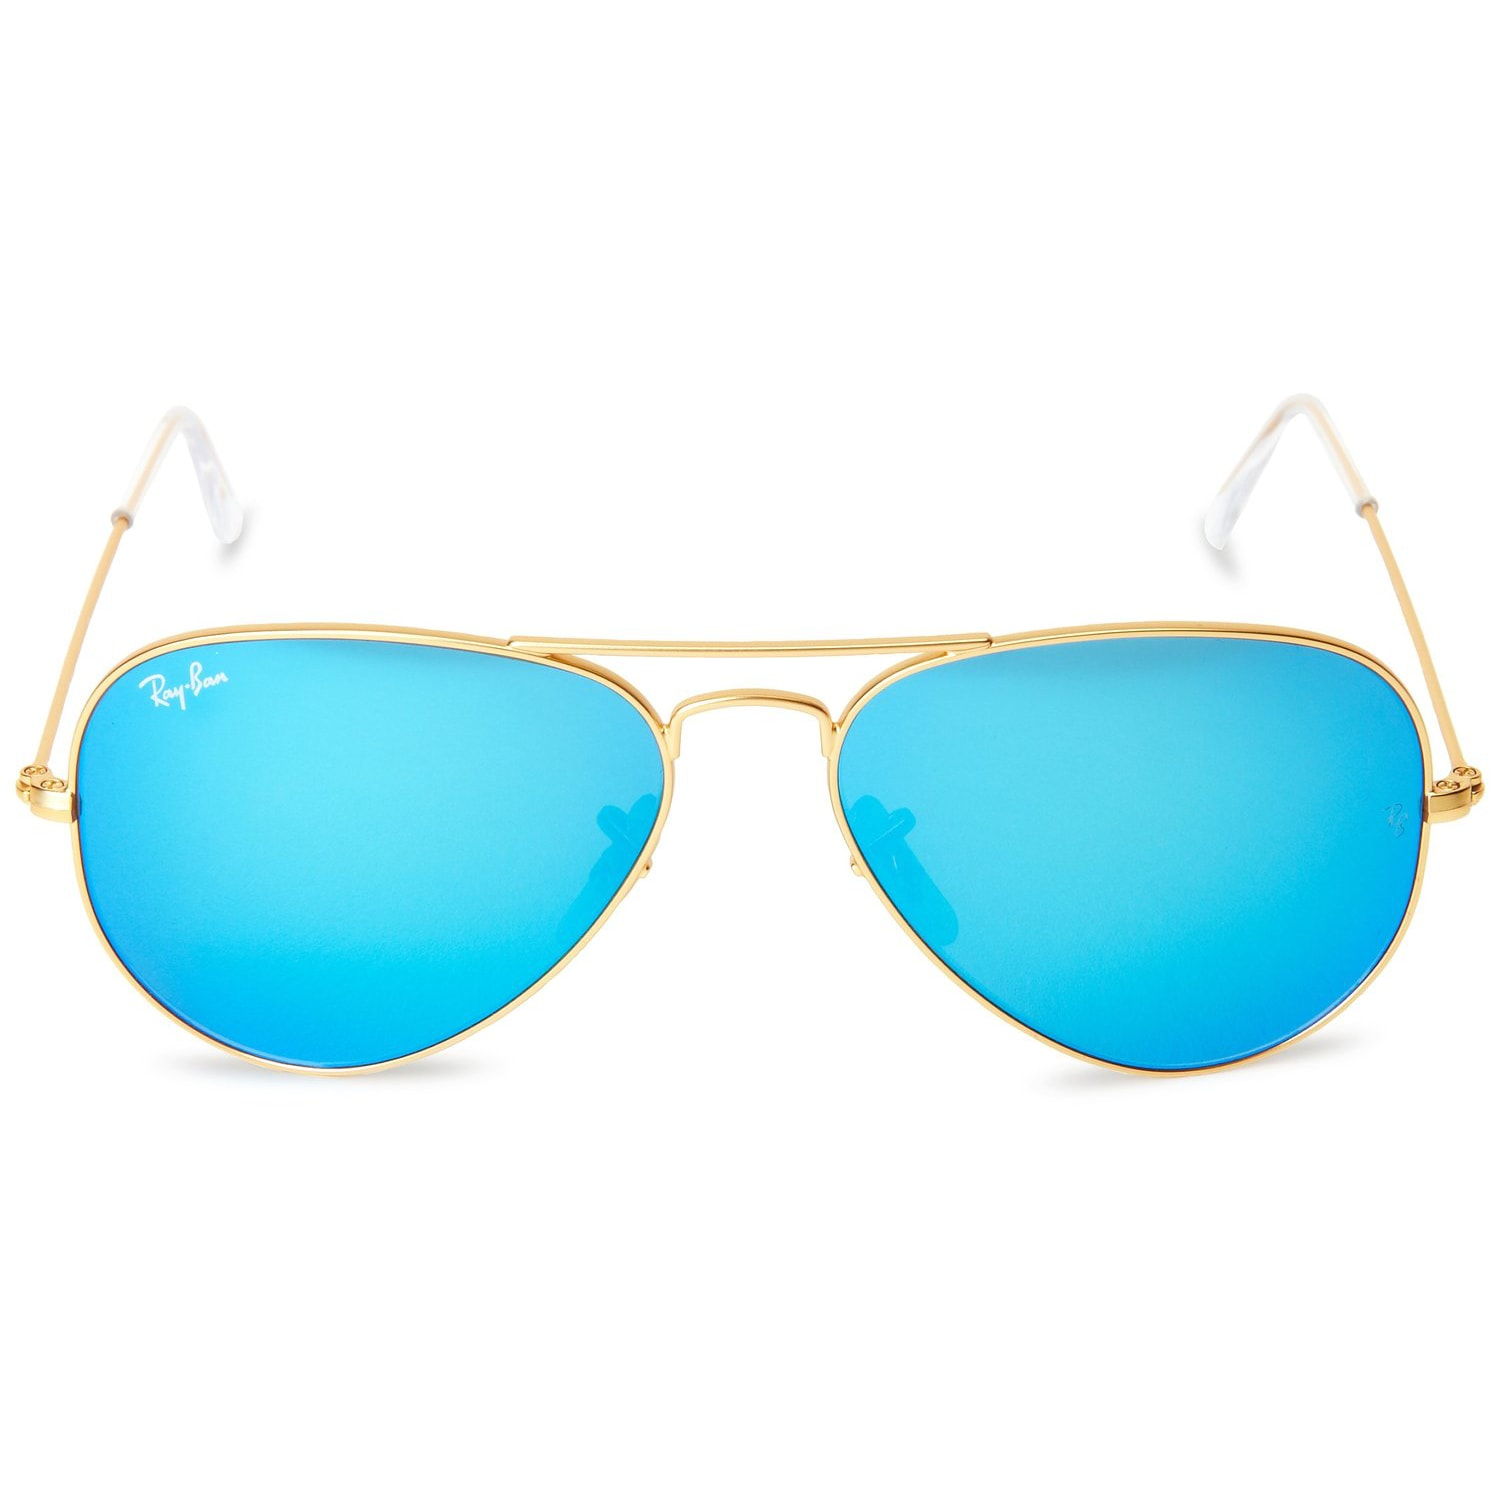 22a1f953ef6d ... free shipping shop ray ban aviator rb 3205 unisex gold frame blue  mirror lens sunglasses free